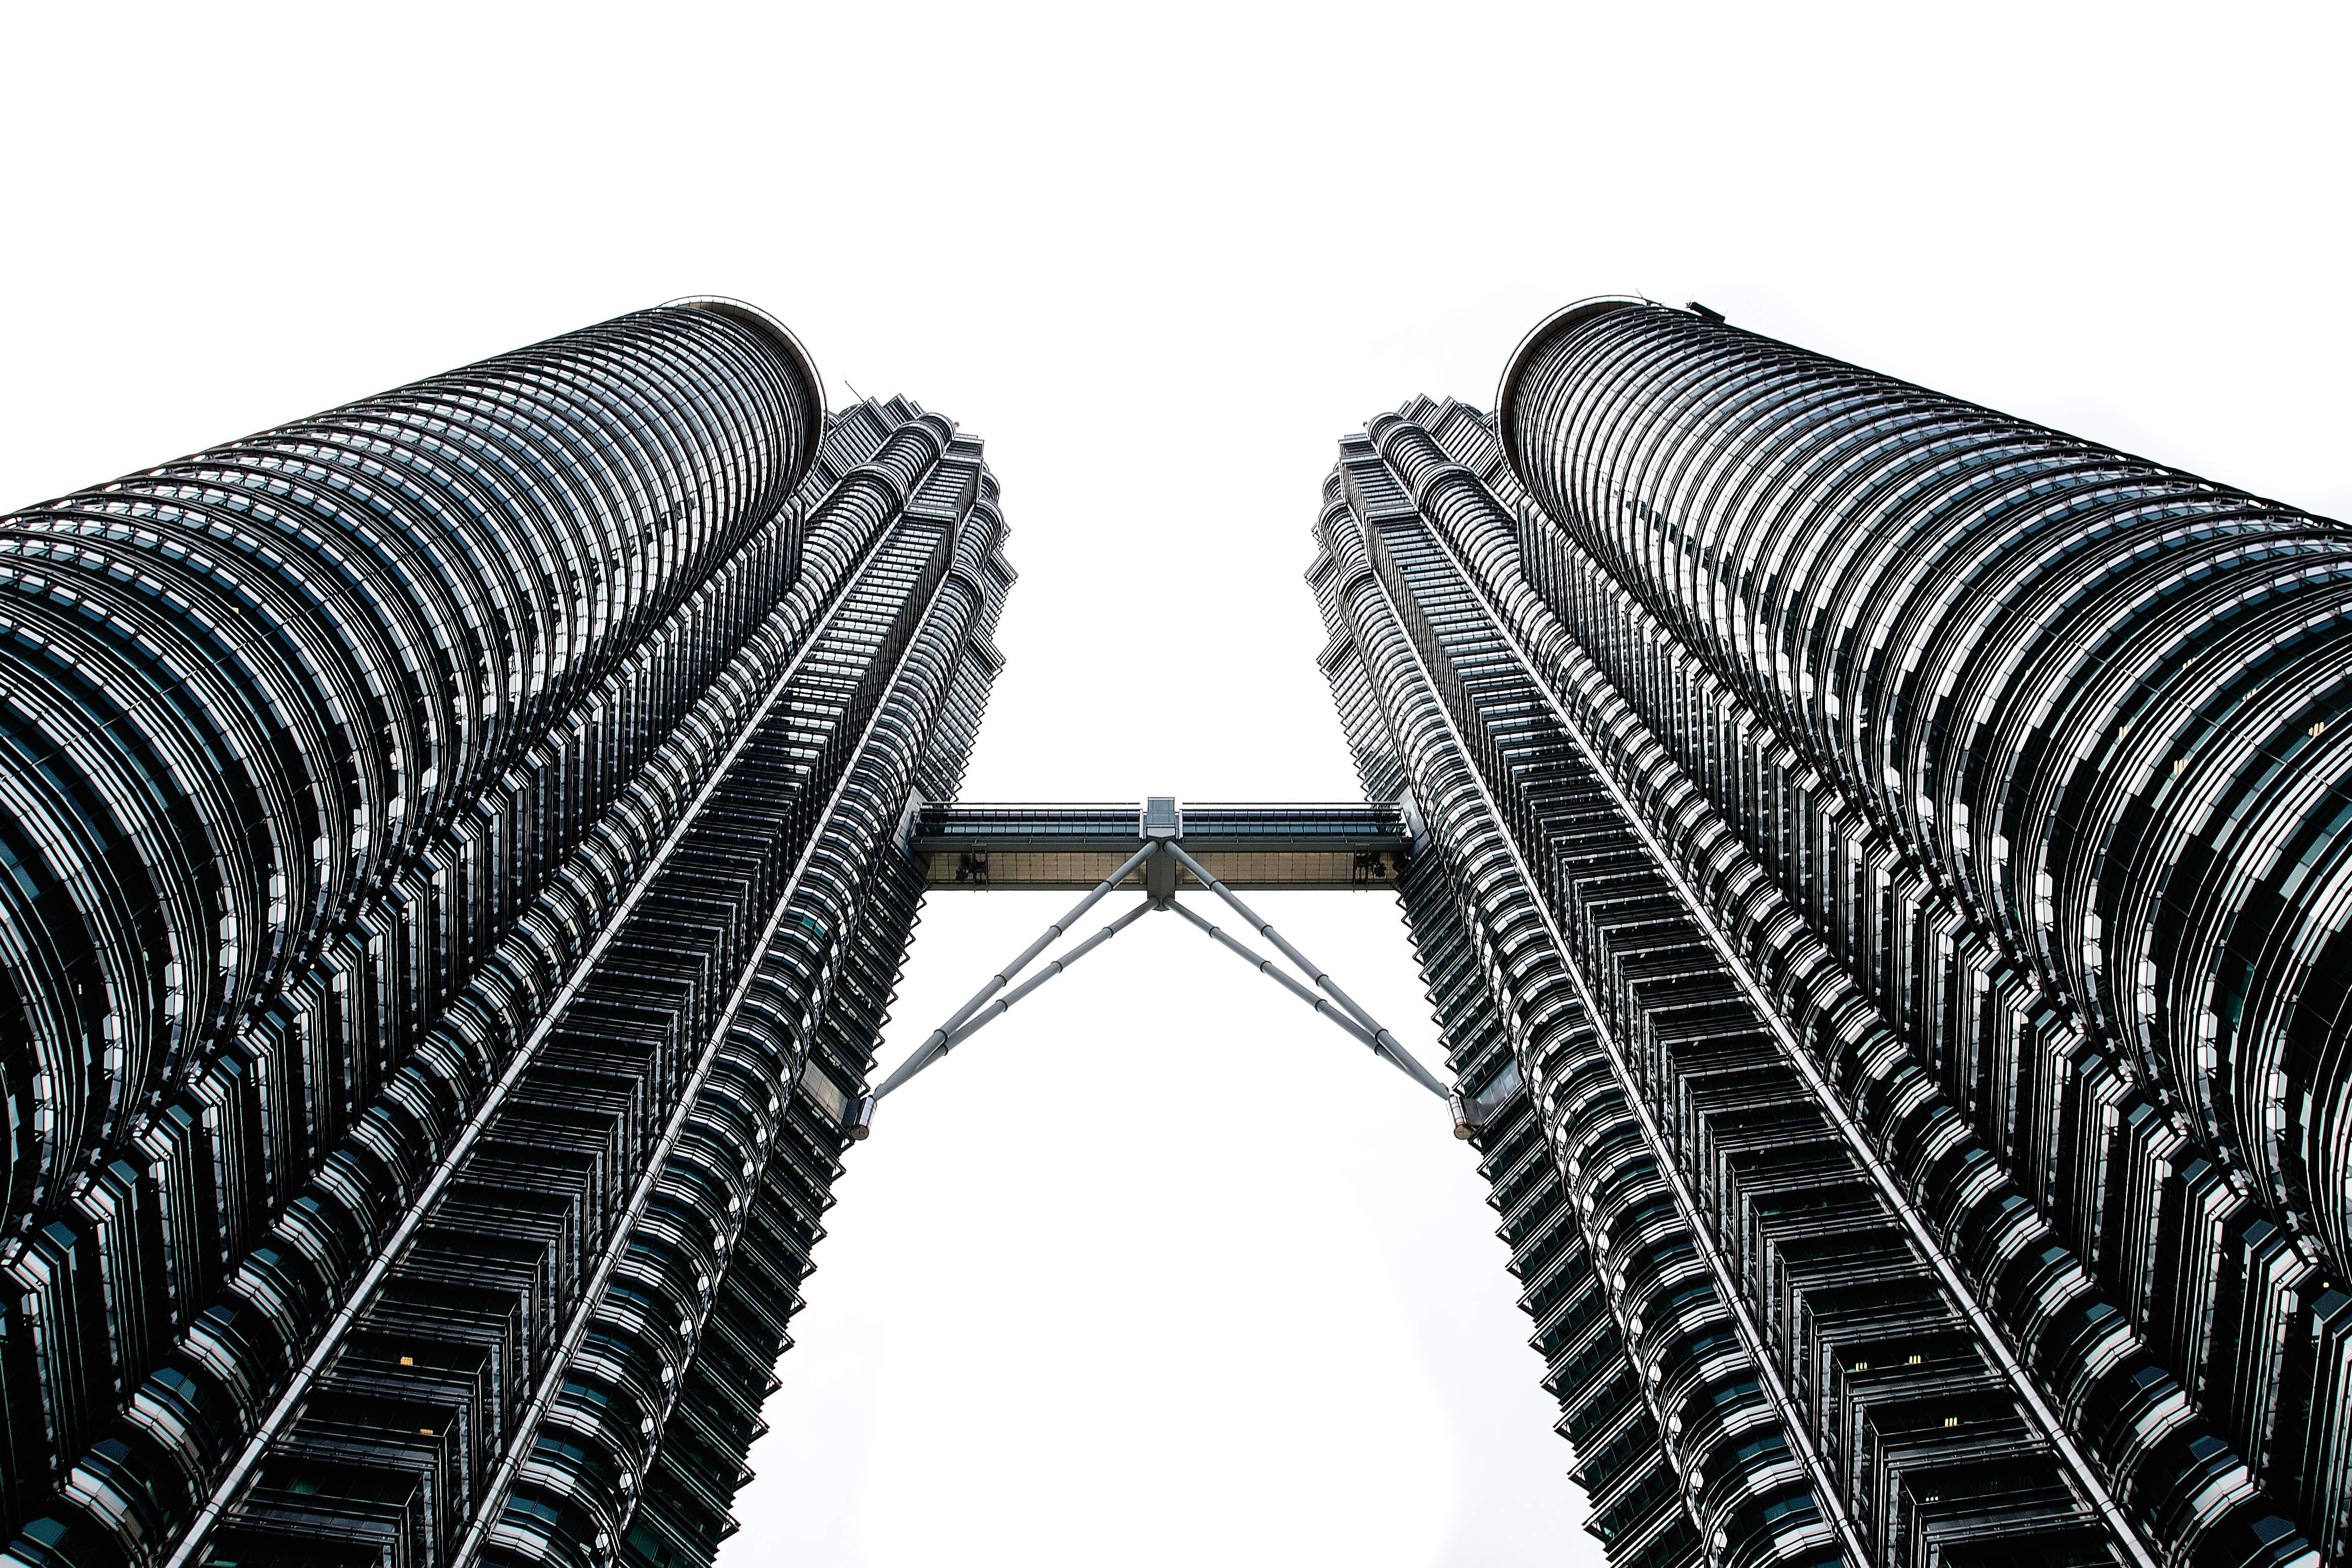 The twin towers of the Petronas Towers complex connected with a skybridge